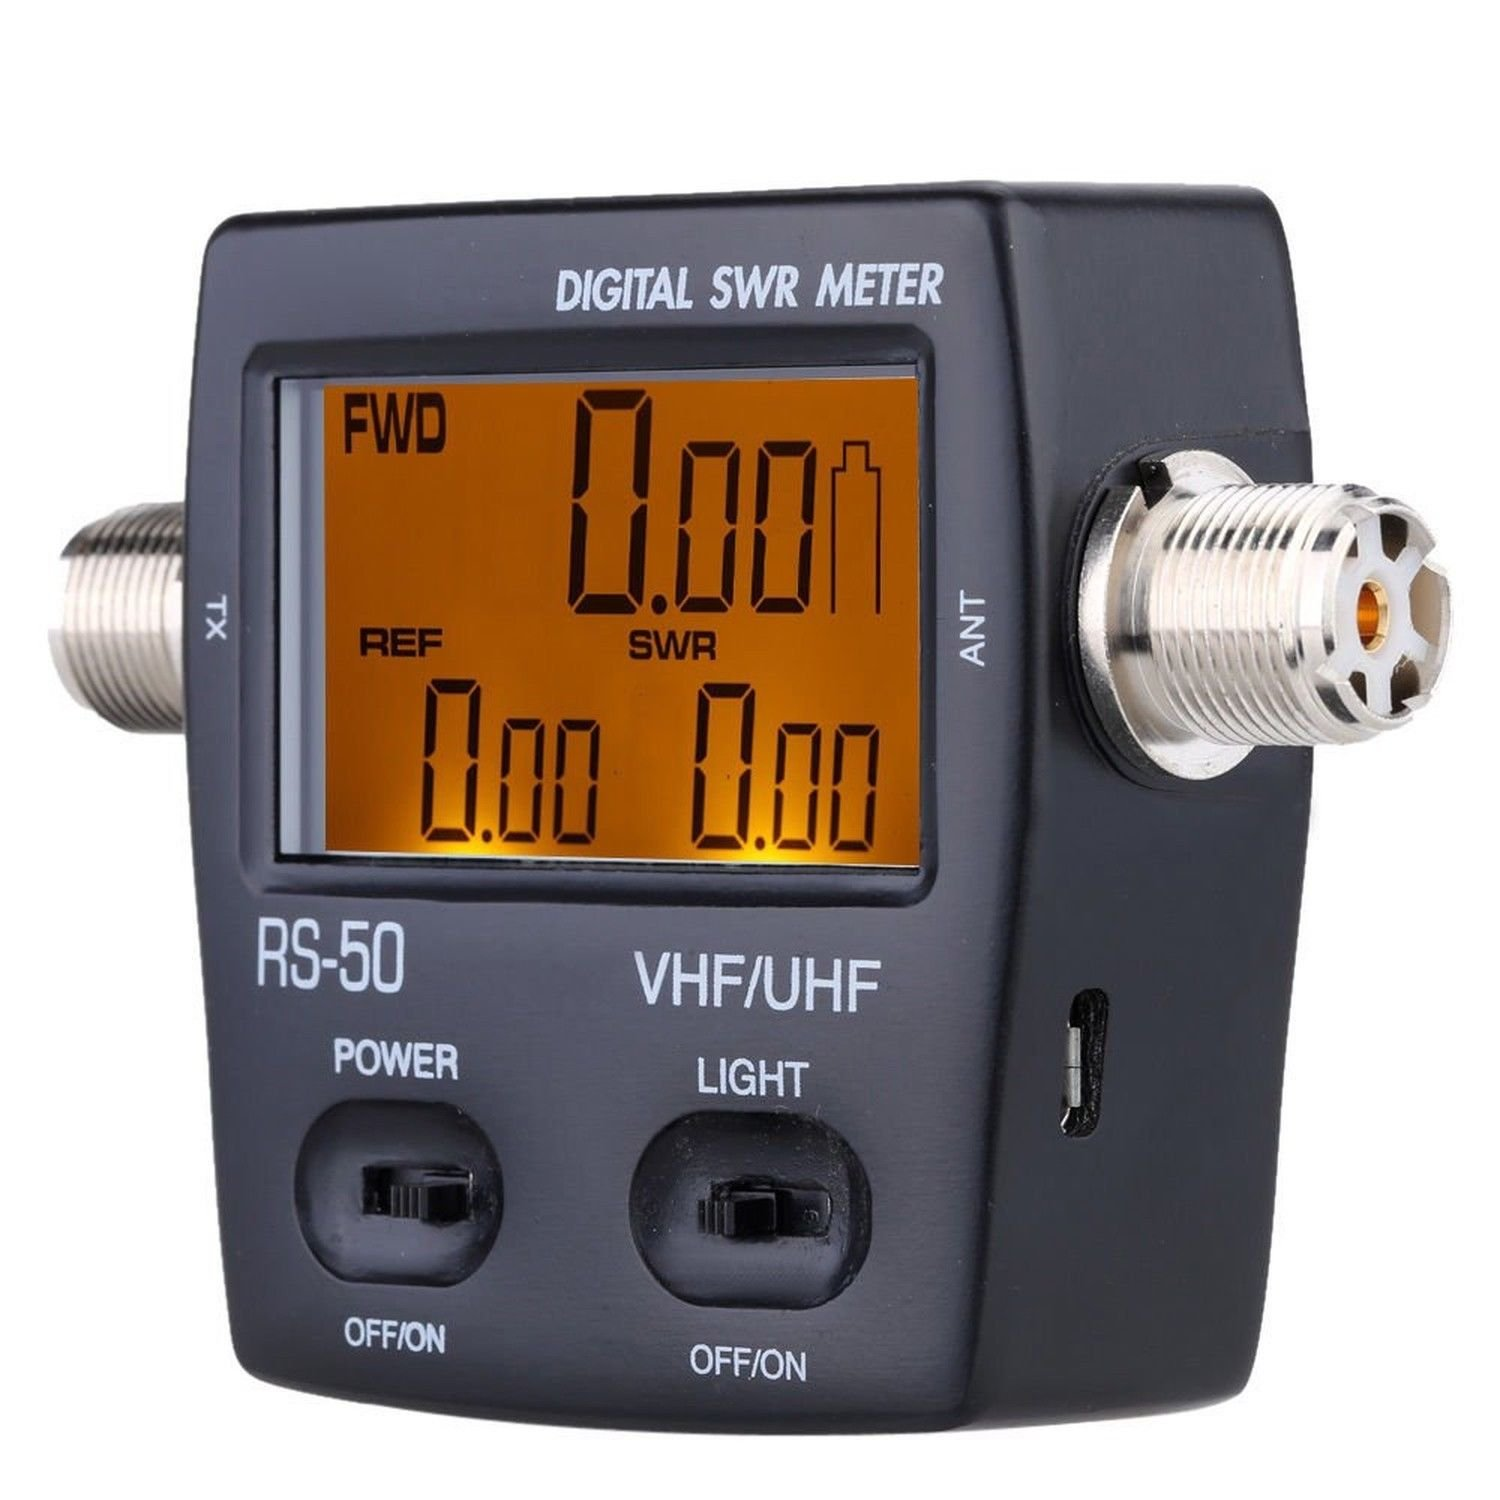 Signstek Professional USB Port or Battery Operated LCD Digital SWR (Standing-Wave Meter) & Po4wer Meter VHF 125-525MHZ 120W for 2 Way Radios